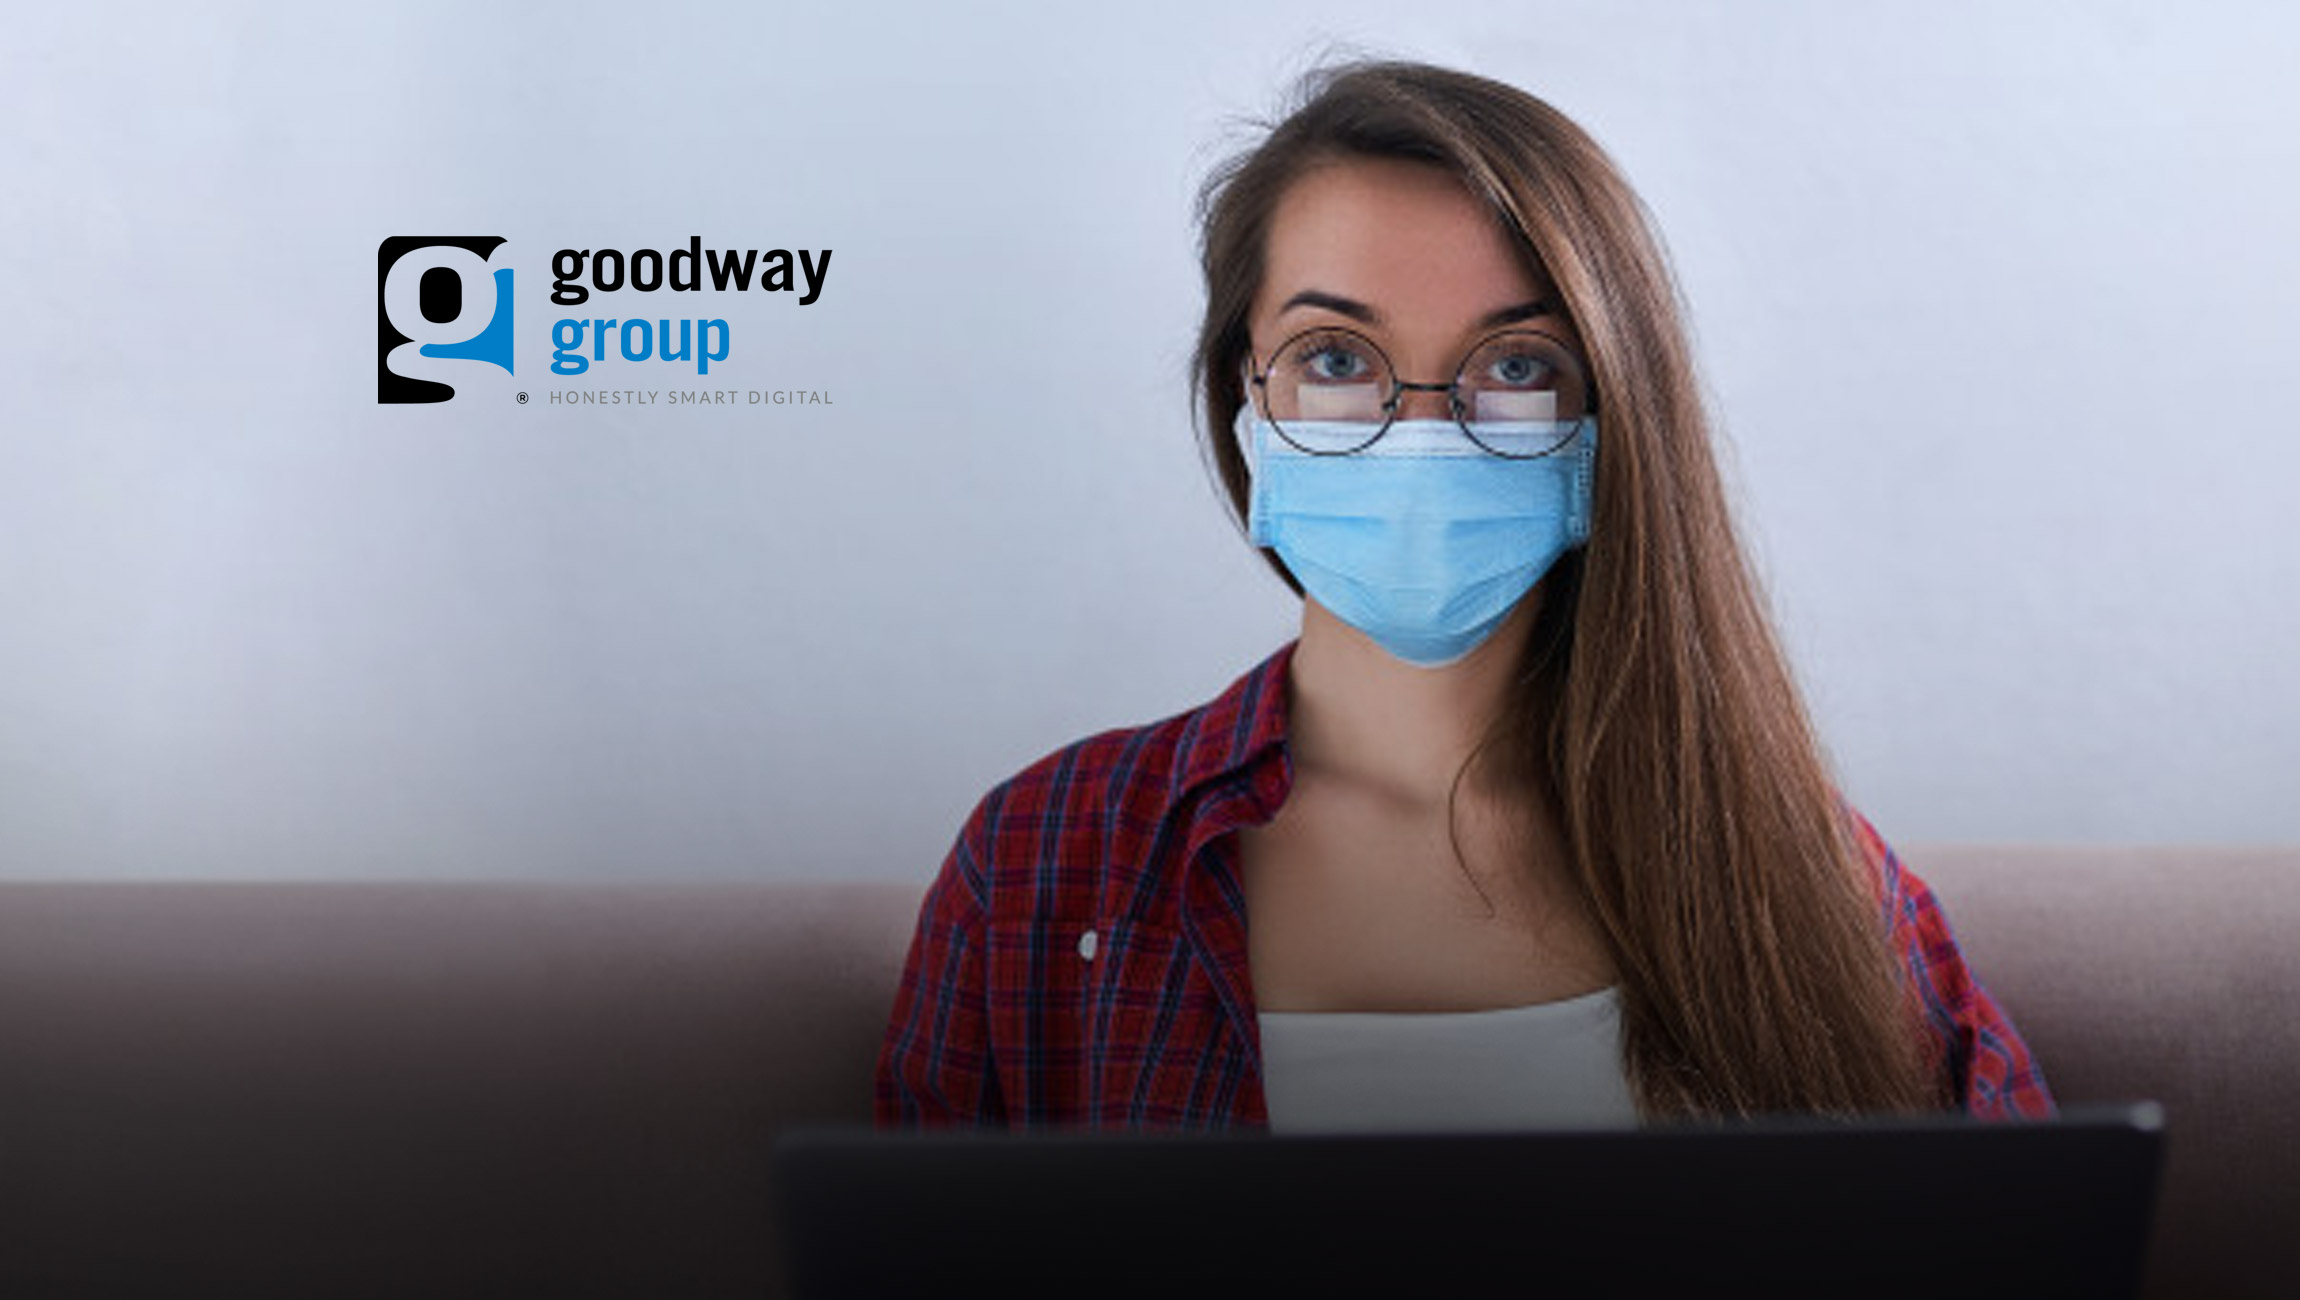 Goodway Group Creates COVID-19 Dashboard with Localized Programmatic Data and Trends